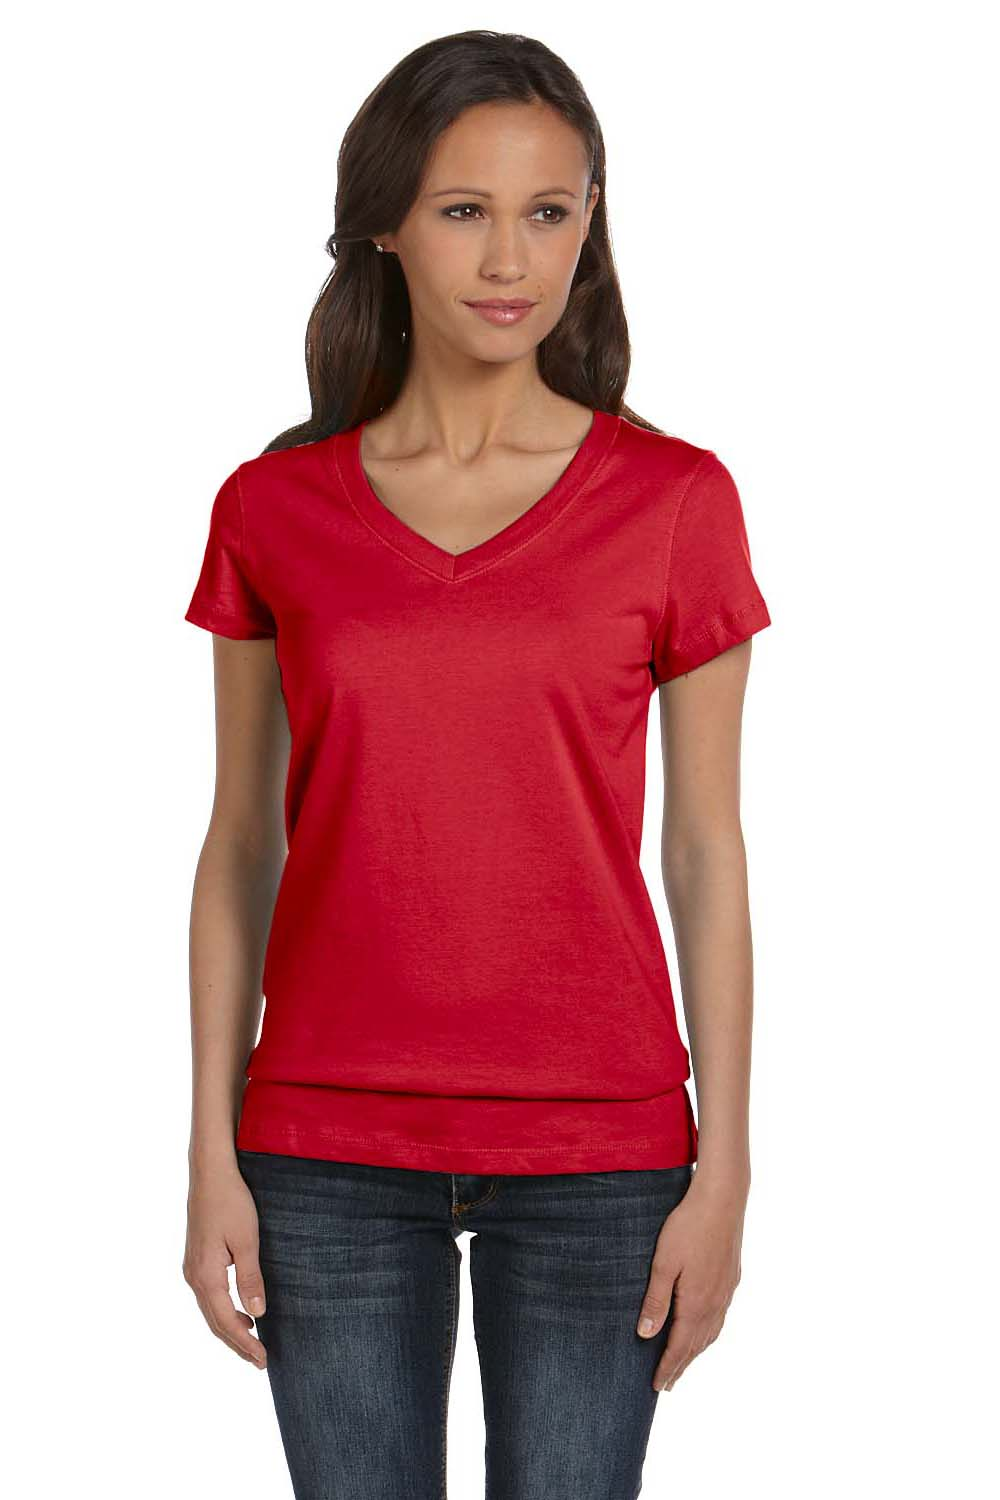 Bella + Canvas B6005 Womens Jersey Short Sleeve V-Neck T-Shirt Red Front